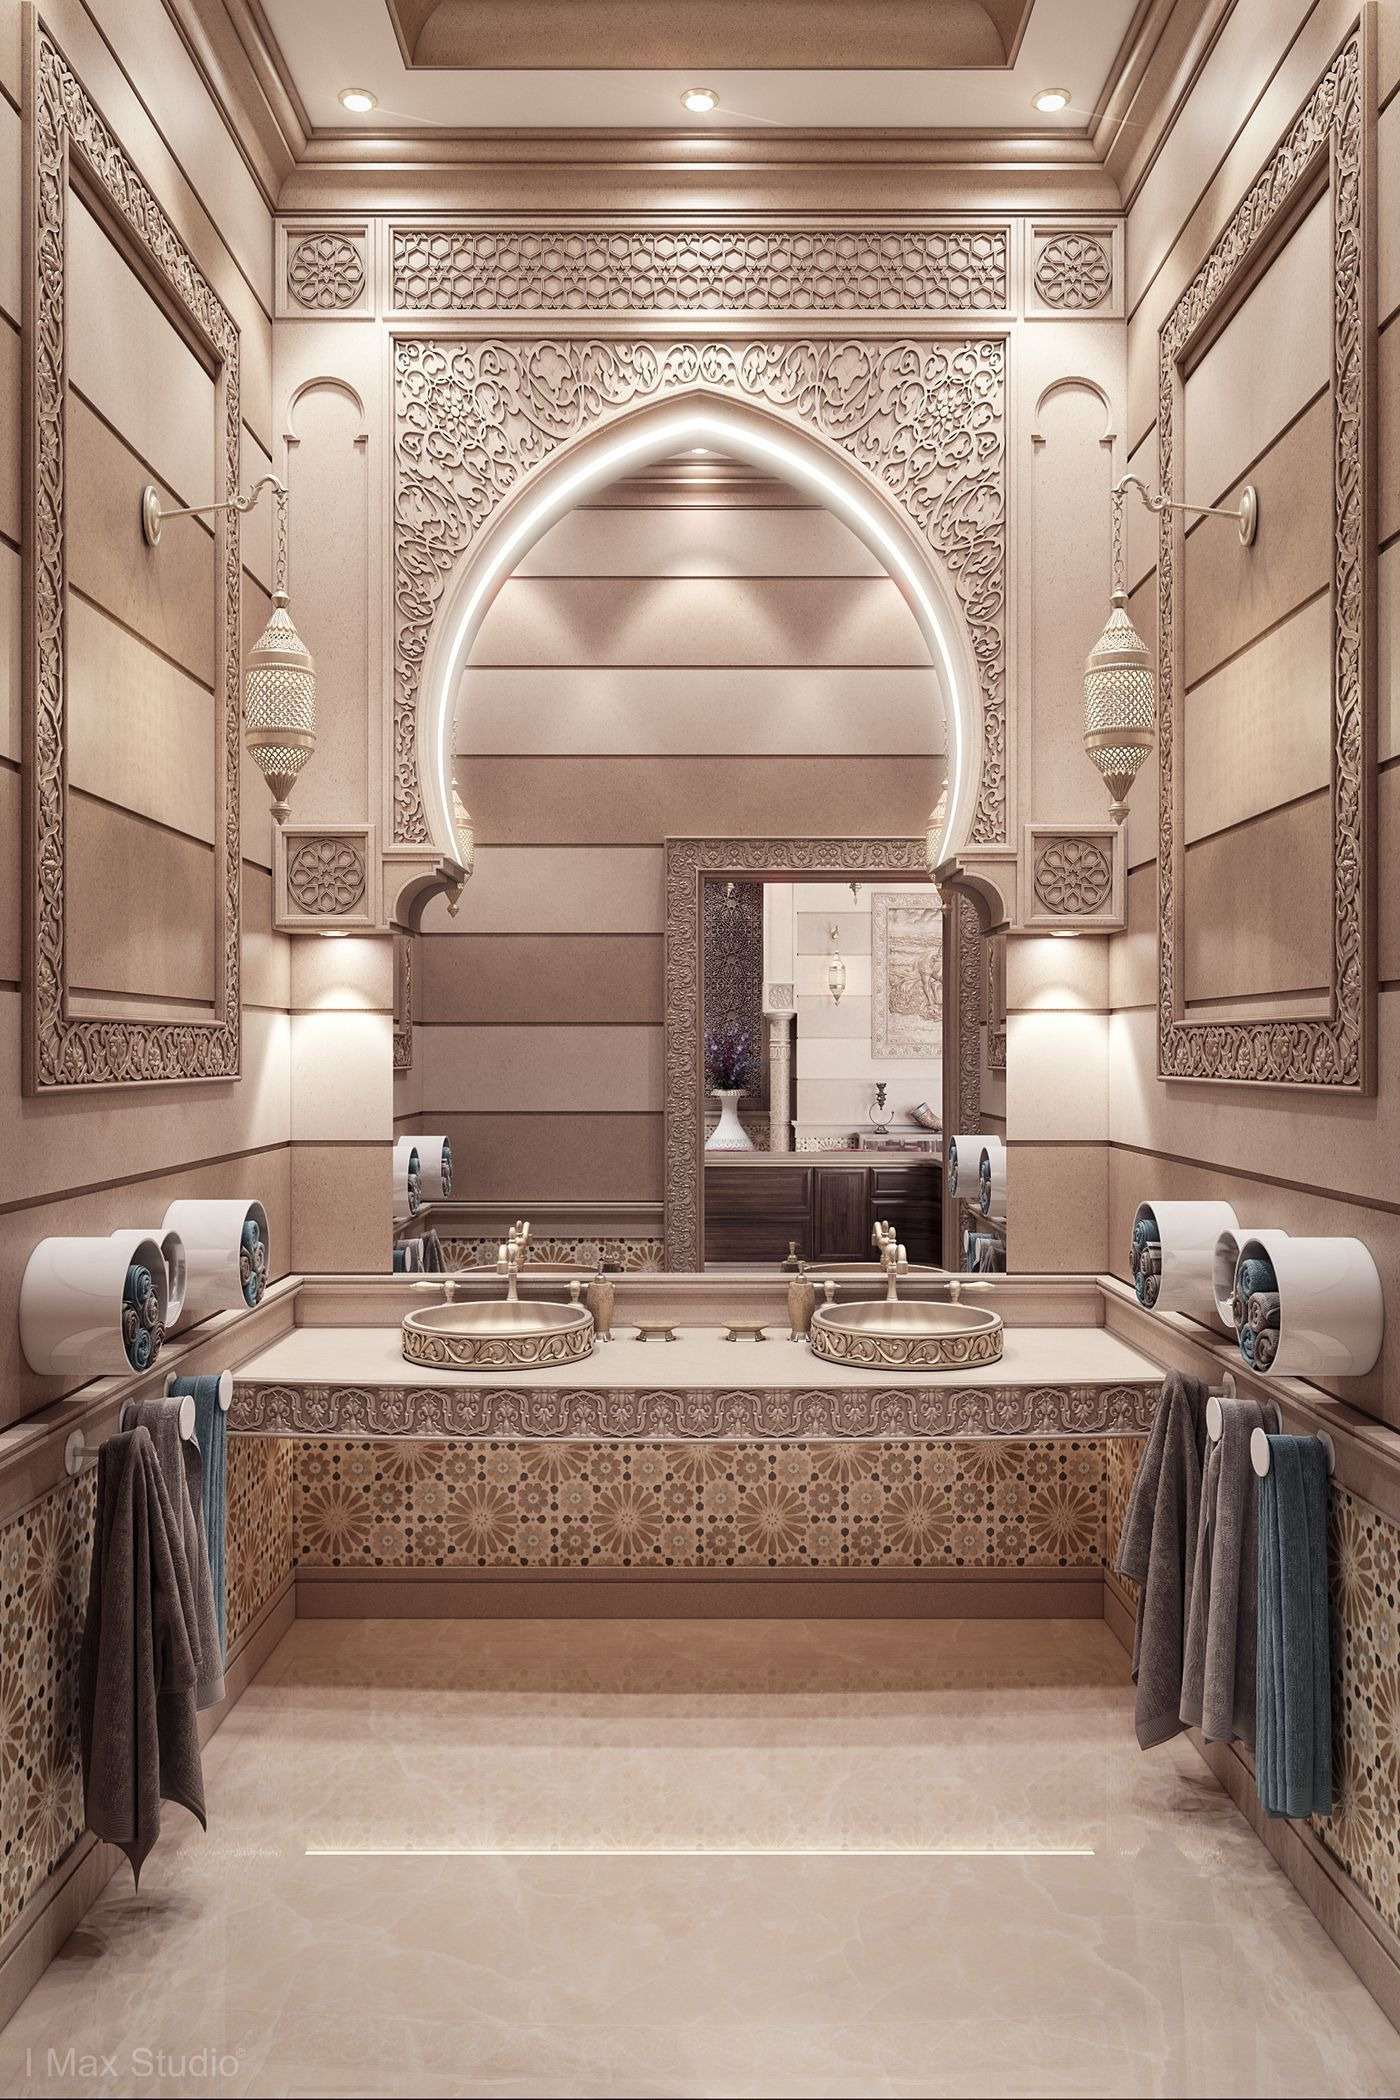 Browse A Wide Selection Of Bathroom Sinks And Vanity Choose From Bathroom Modern And Classic Styles Banheiros Luxuosos Lindos Banheiros Decoracao Marroquina